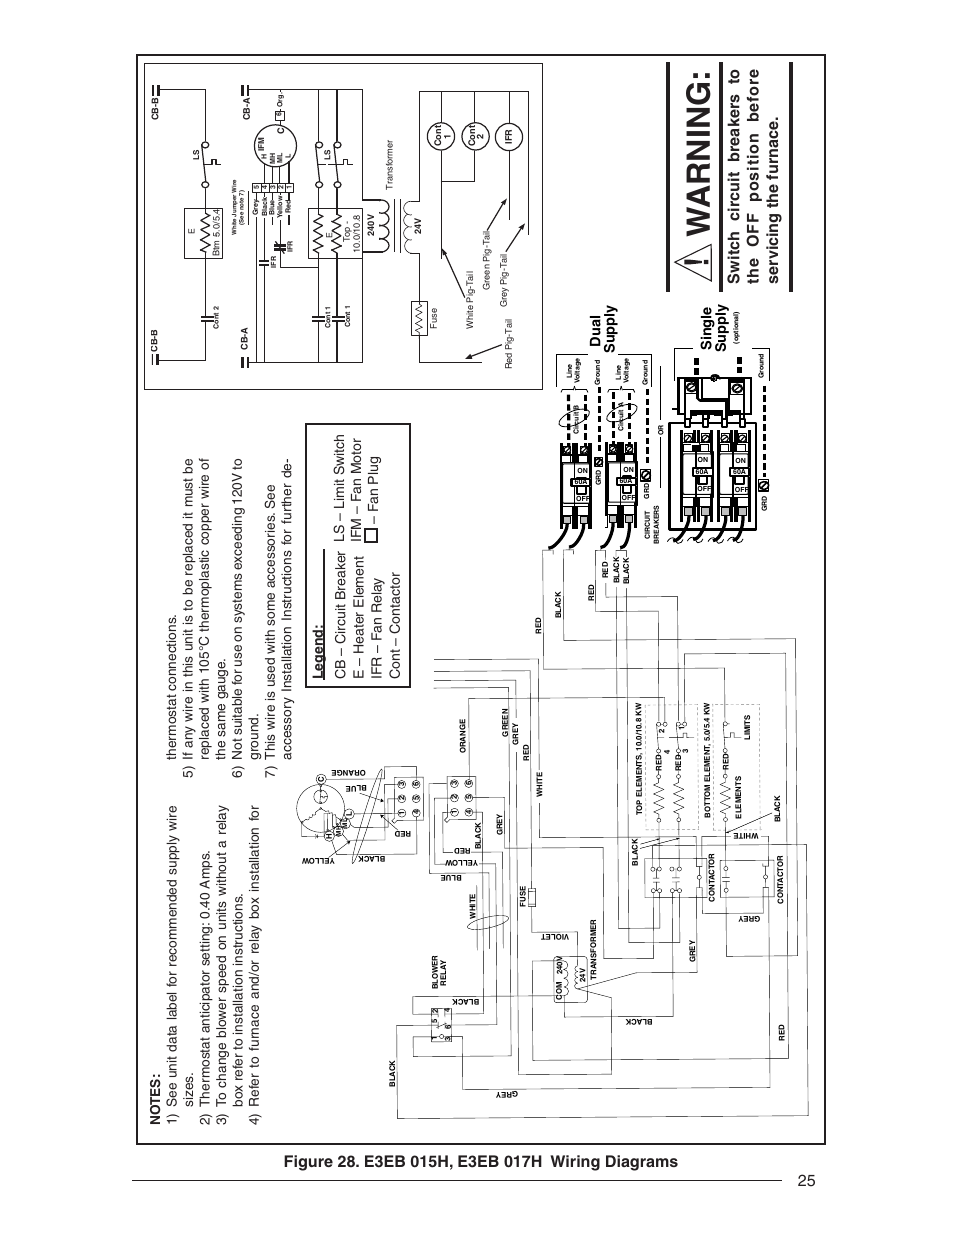 Mobile Home Intertherm Furnace Wiring Diagram Parts Schematics For Homes E2eb 020 Ha Wiringe3eb 015h Supply Detailed